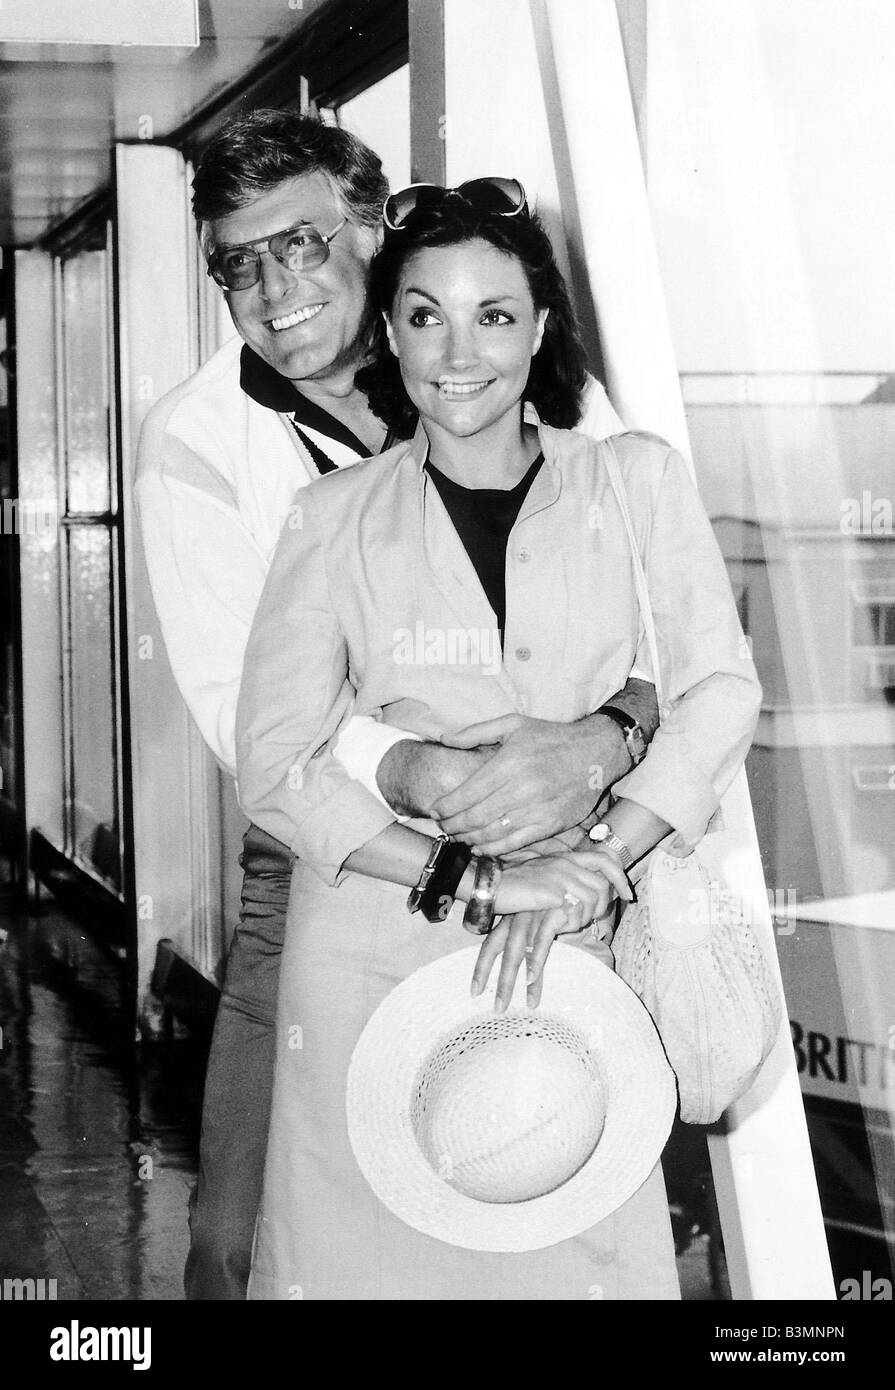 Kathryn Evans Singer and her husband Peter Purves TV Presenter at Heathrow airport after arriving from Barbados - Stock Image